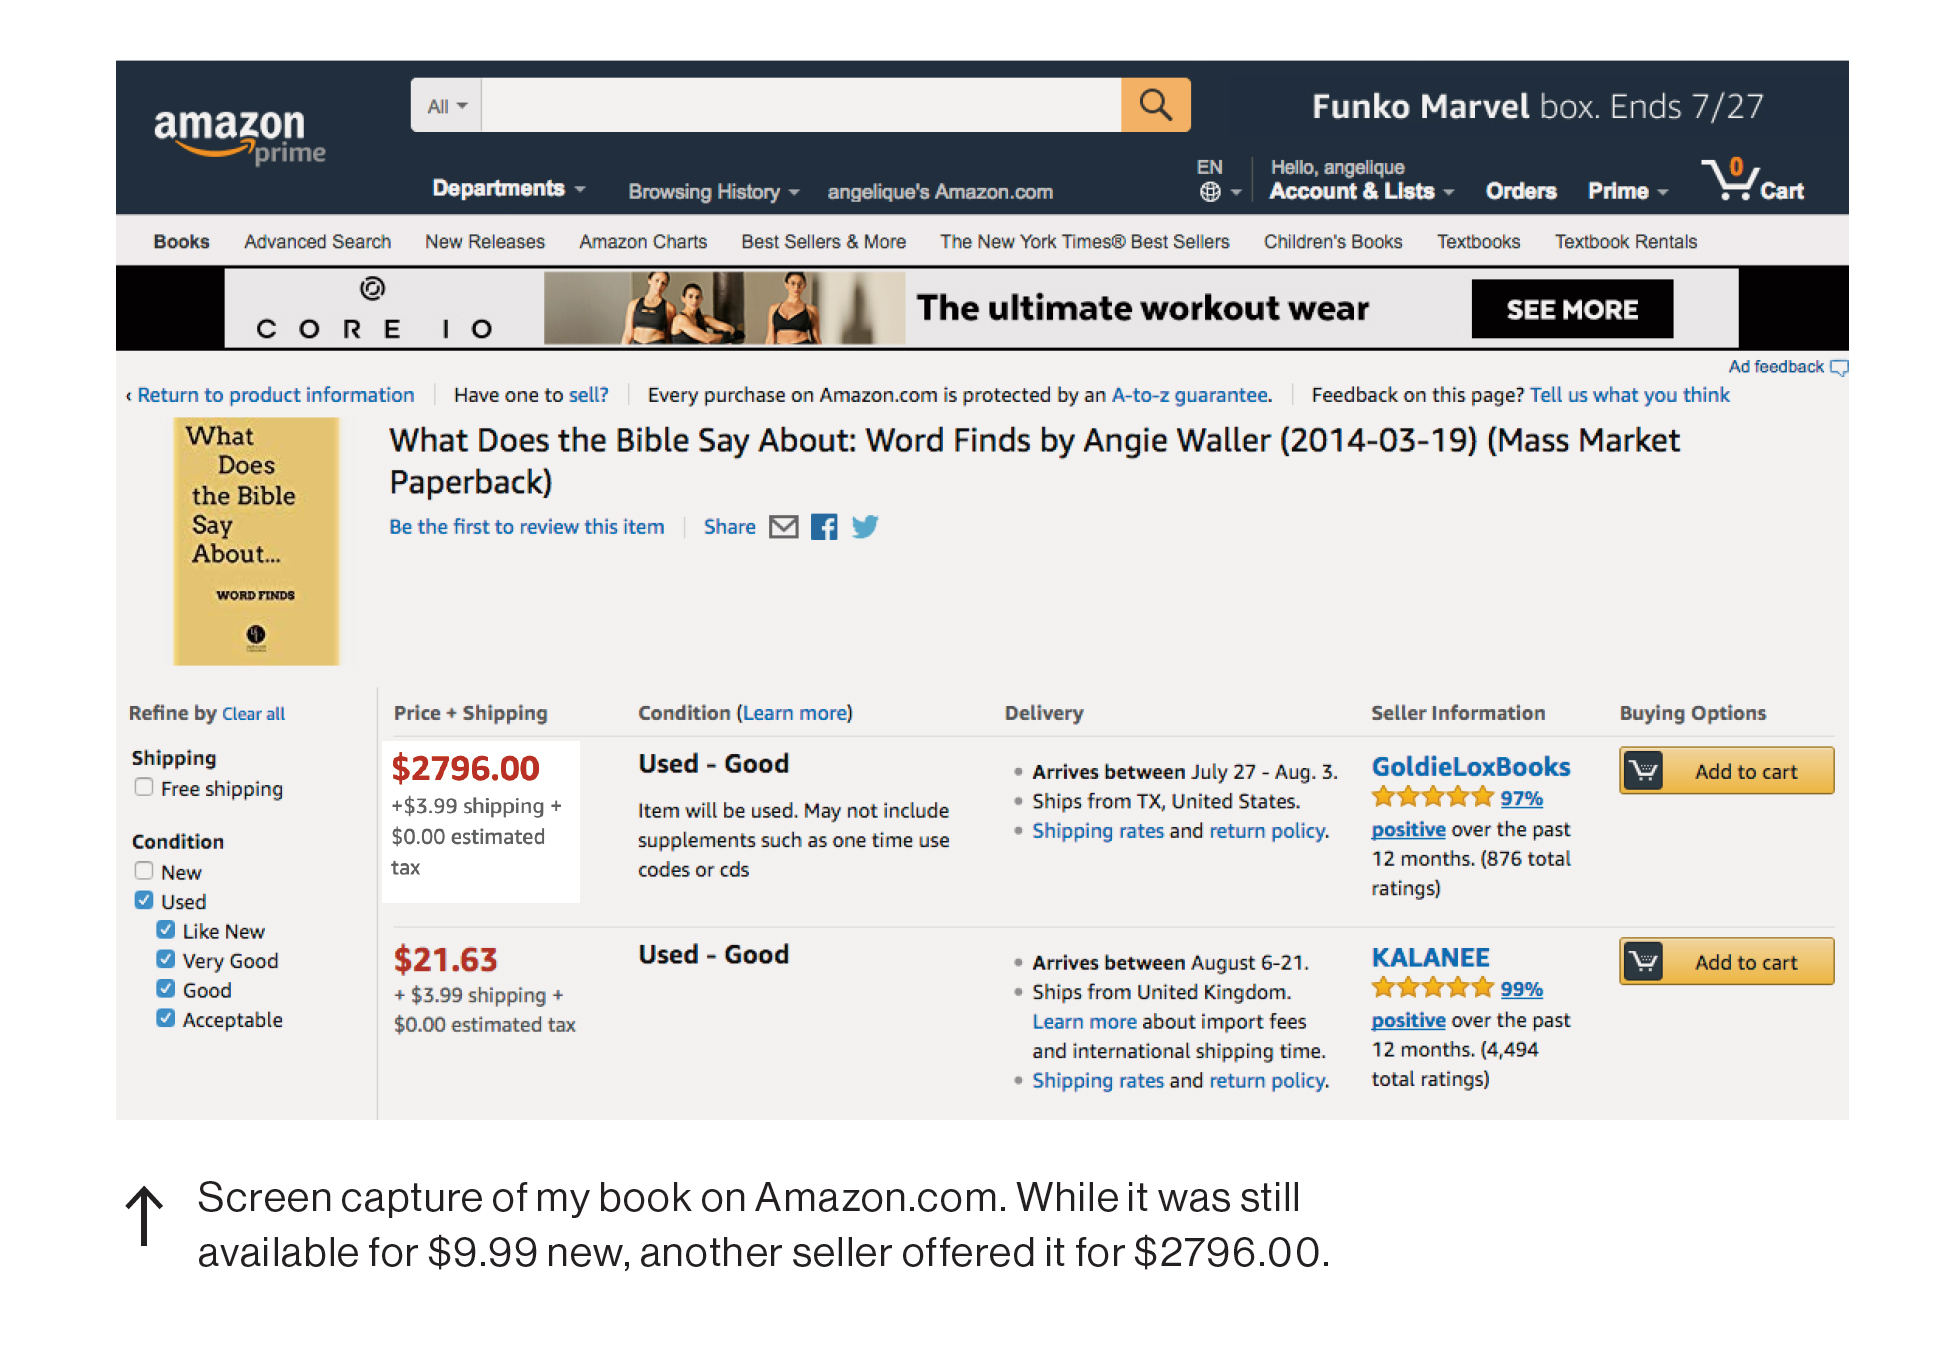 Screen capture of my book on Amazon.com marked up to $2,796 while it is still available from me for $9.99